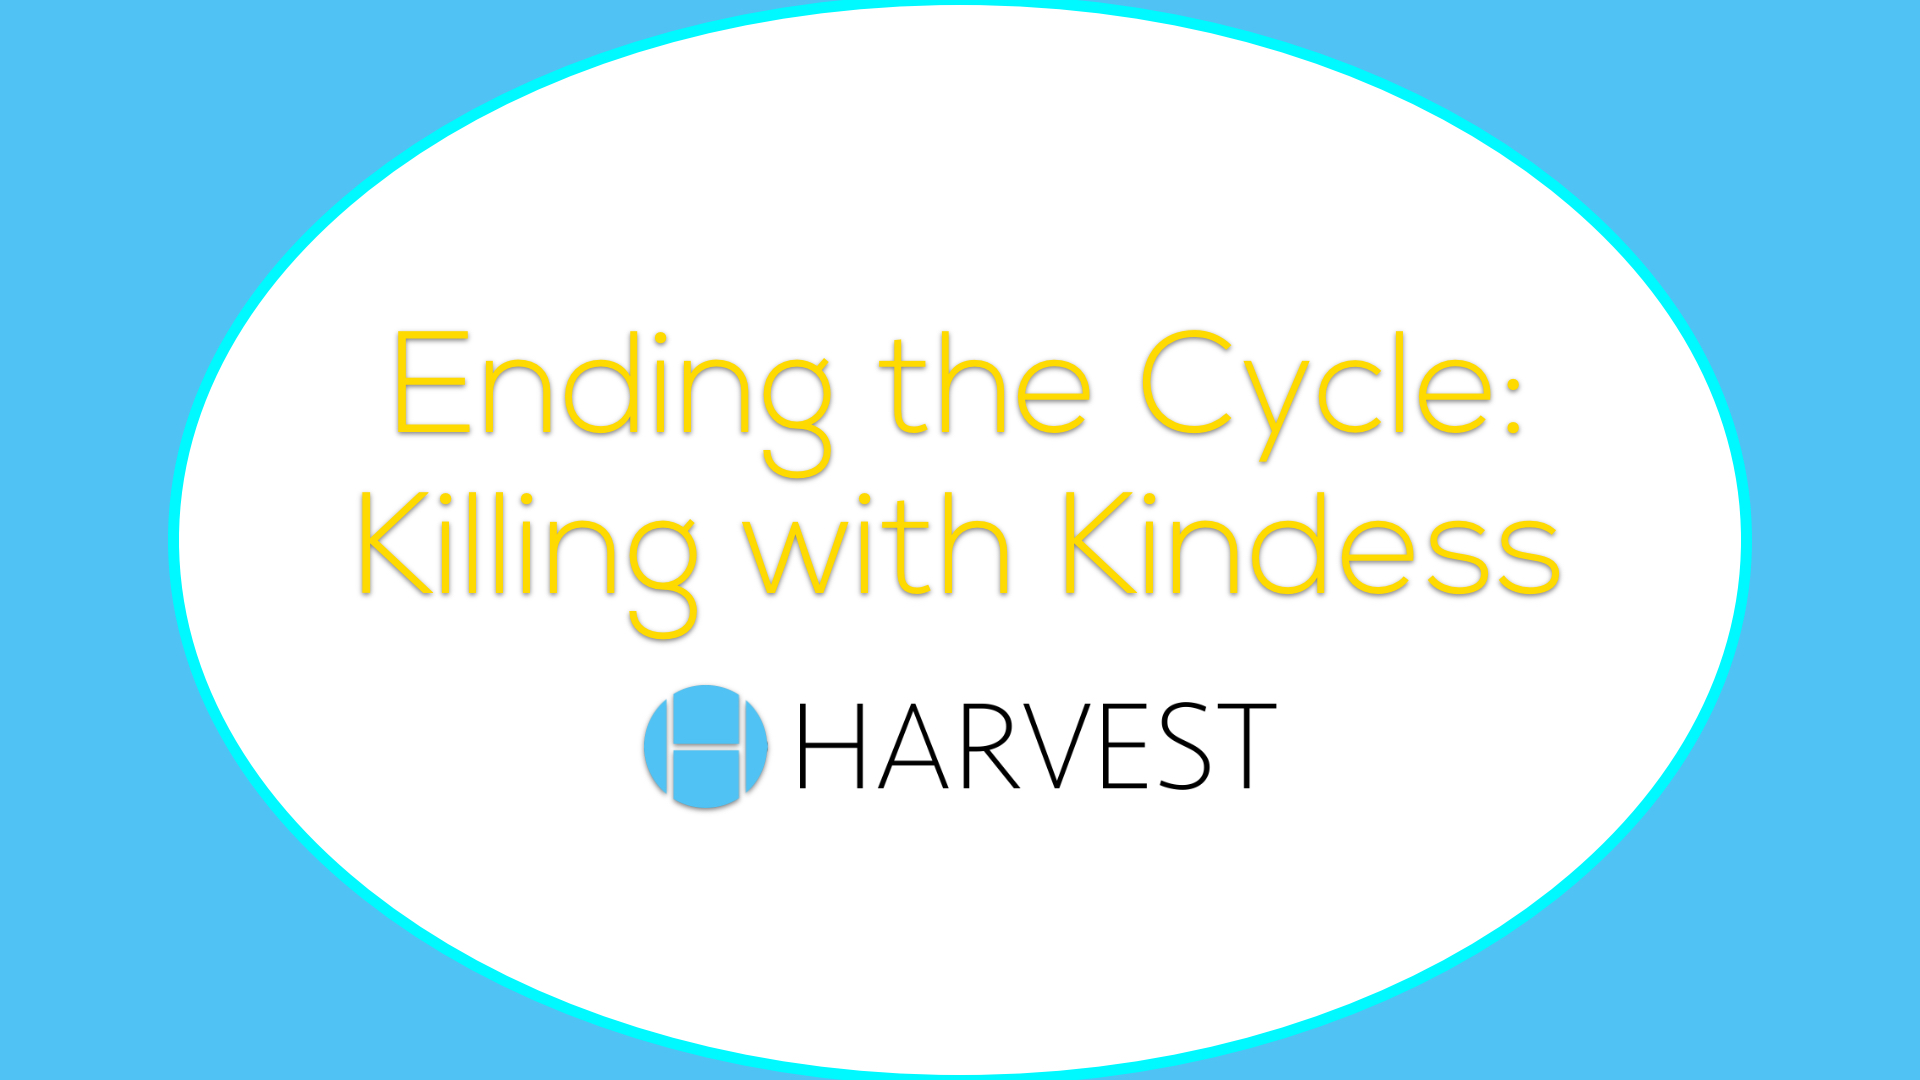 Ending the Cycle: Killing with Kindness